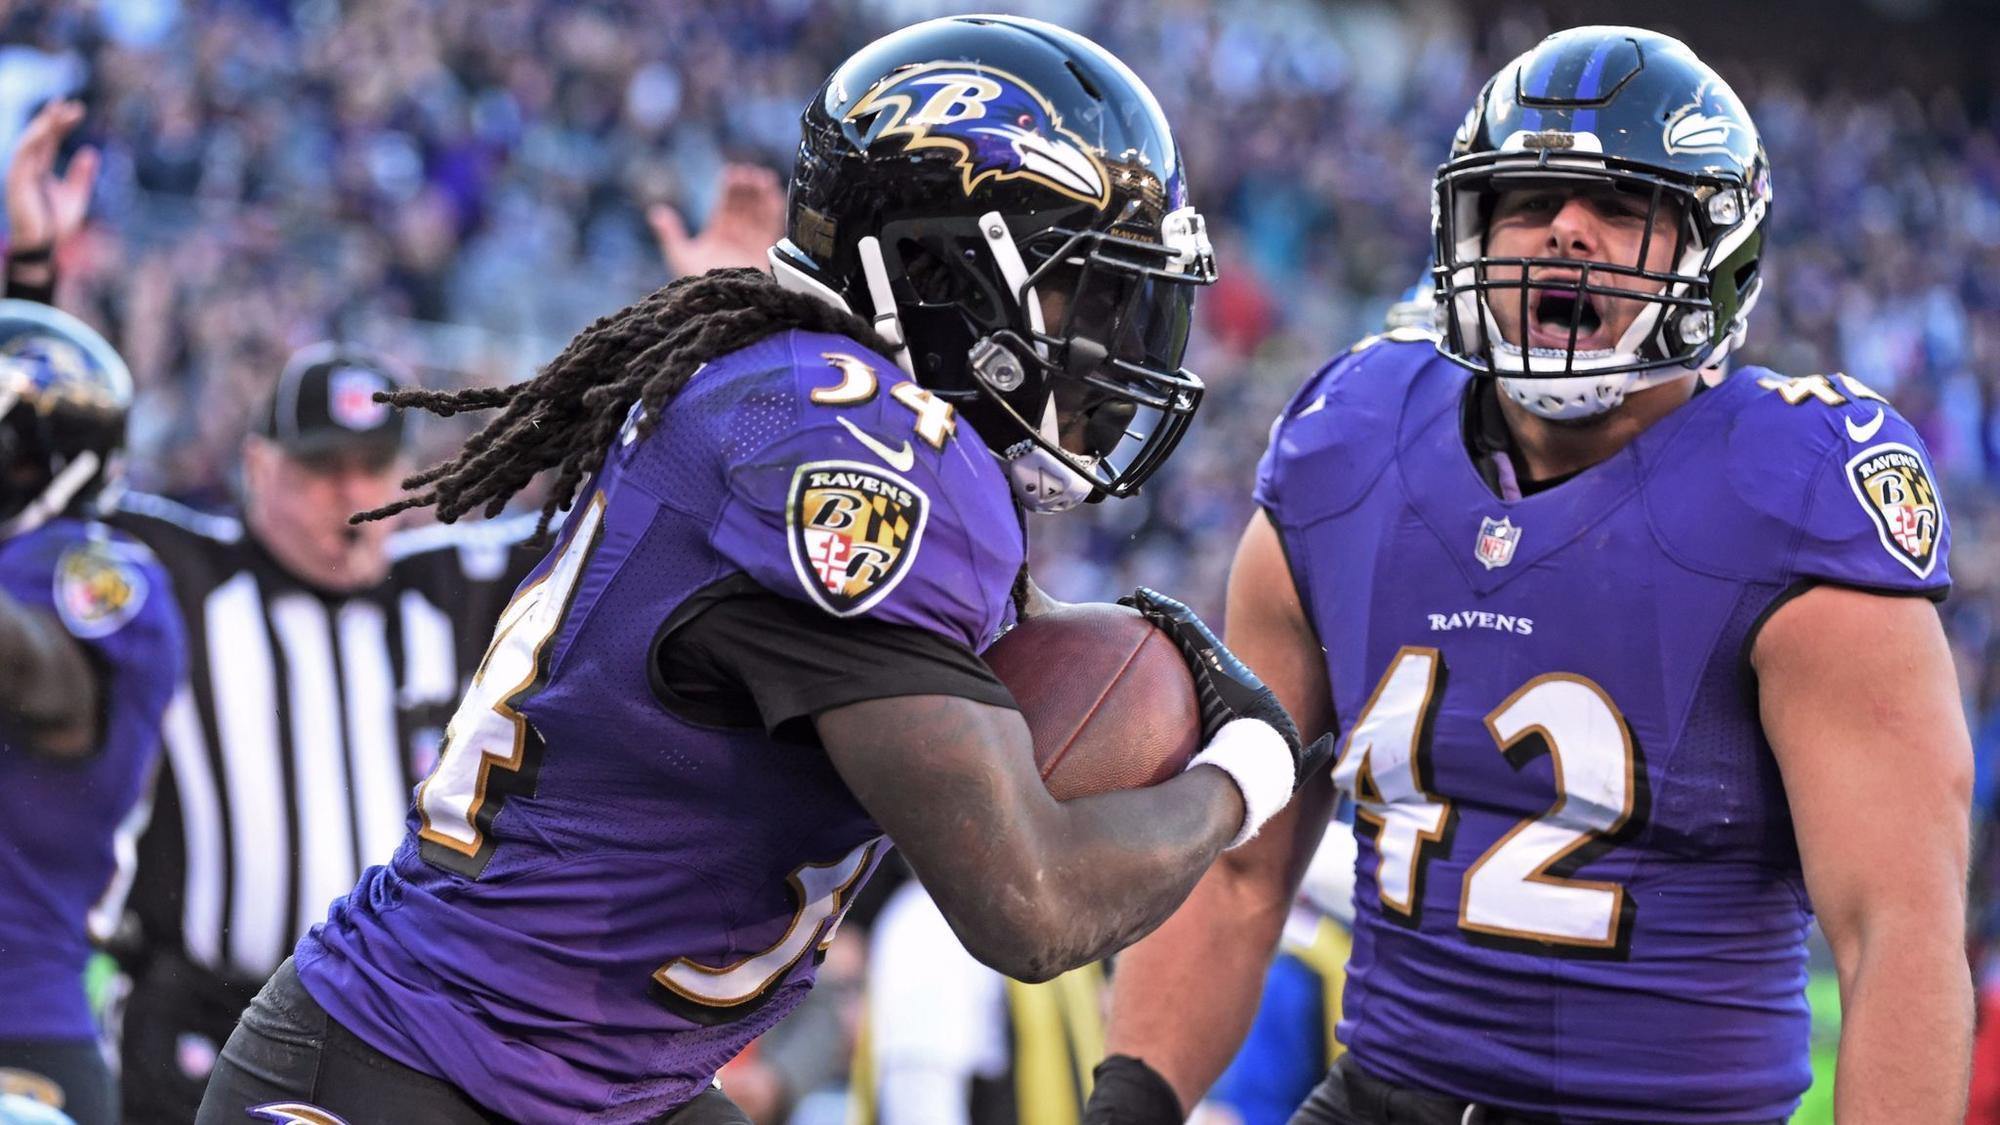 Offense puts together best outing of season, leads Ravens to key victory over Lions, 44-20